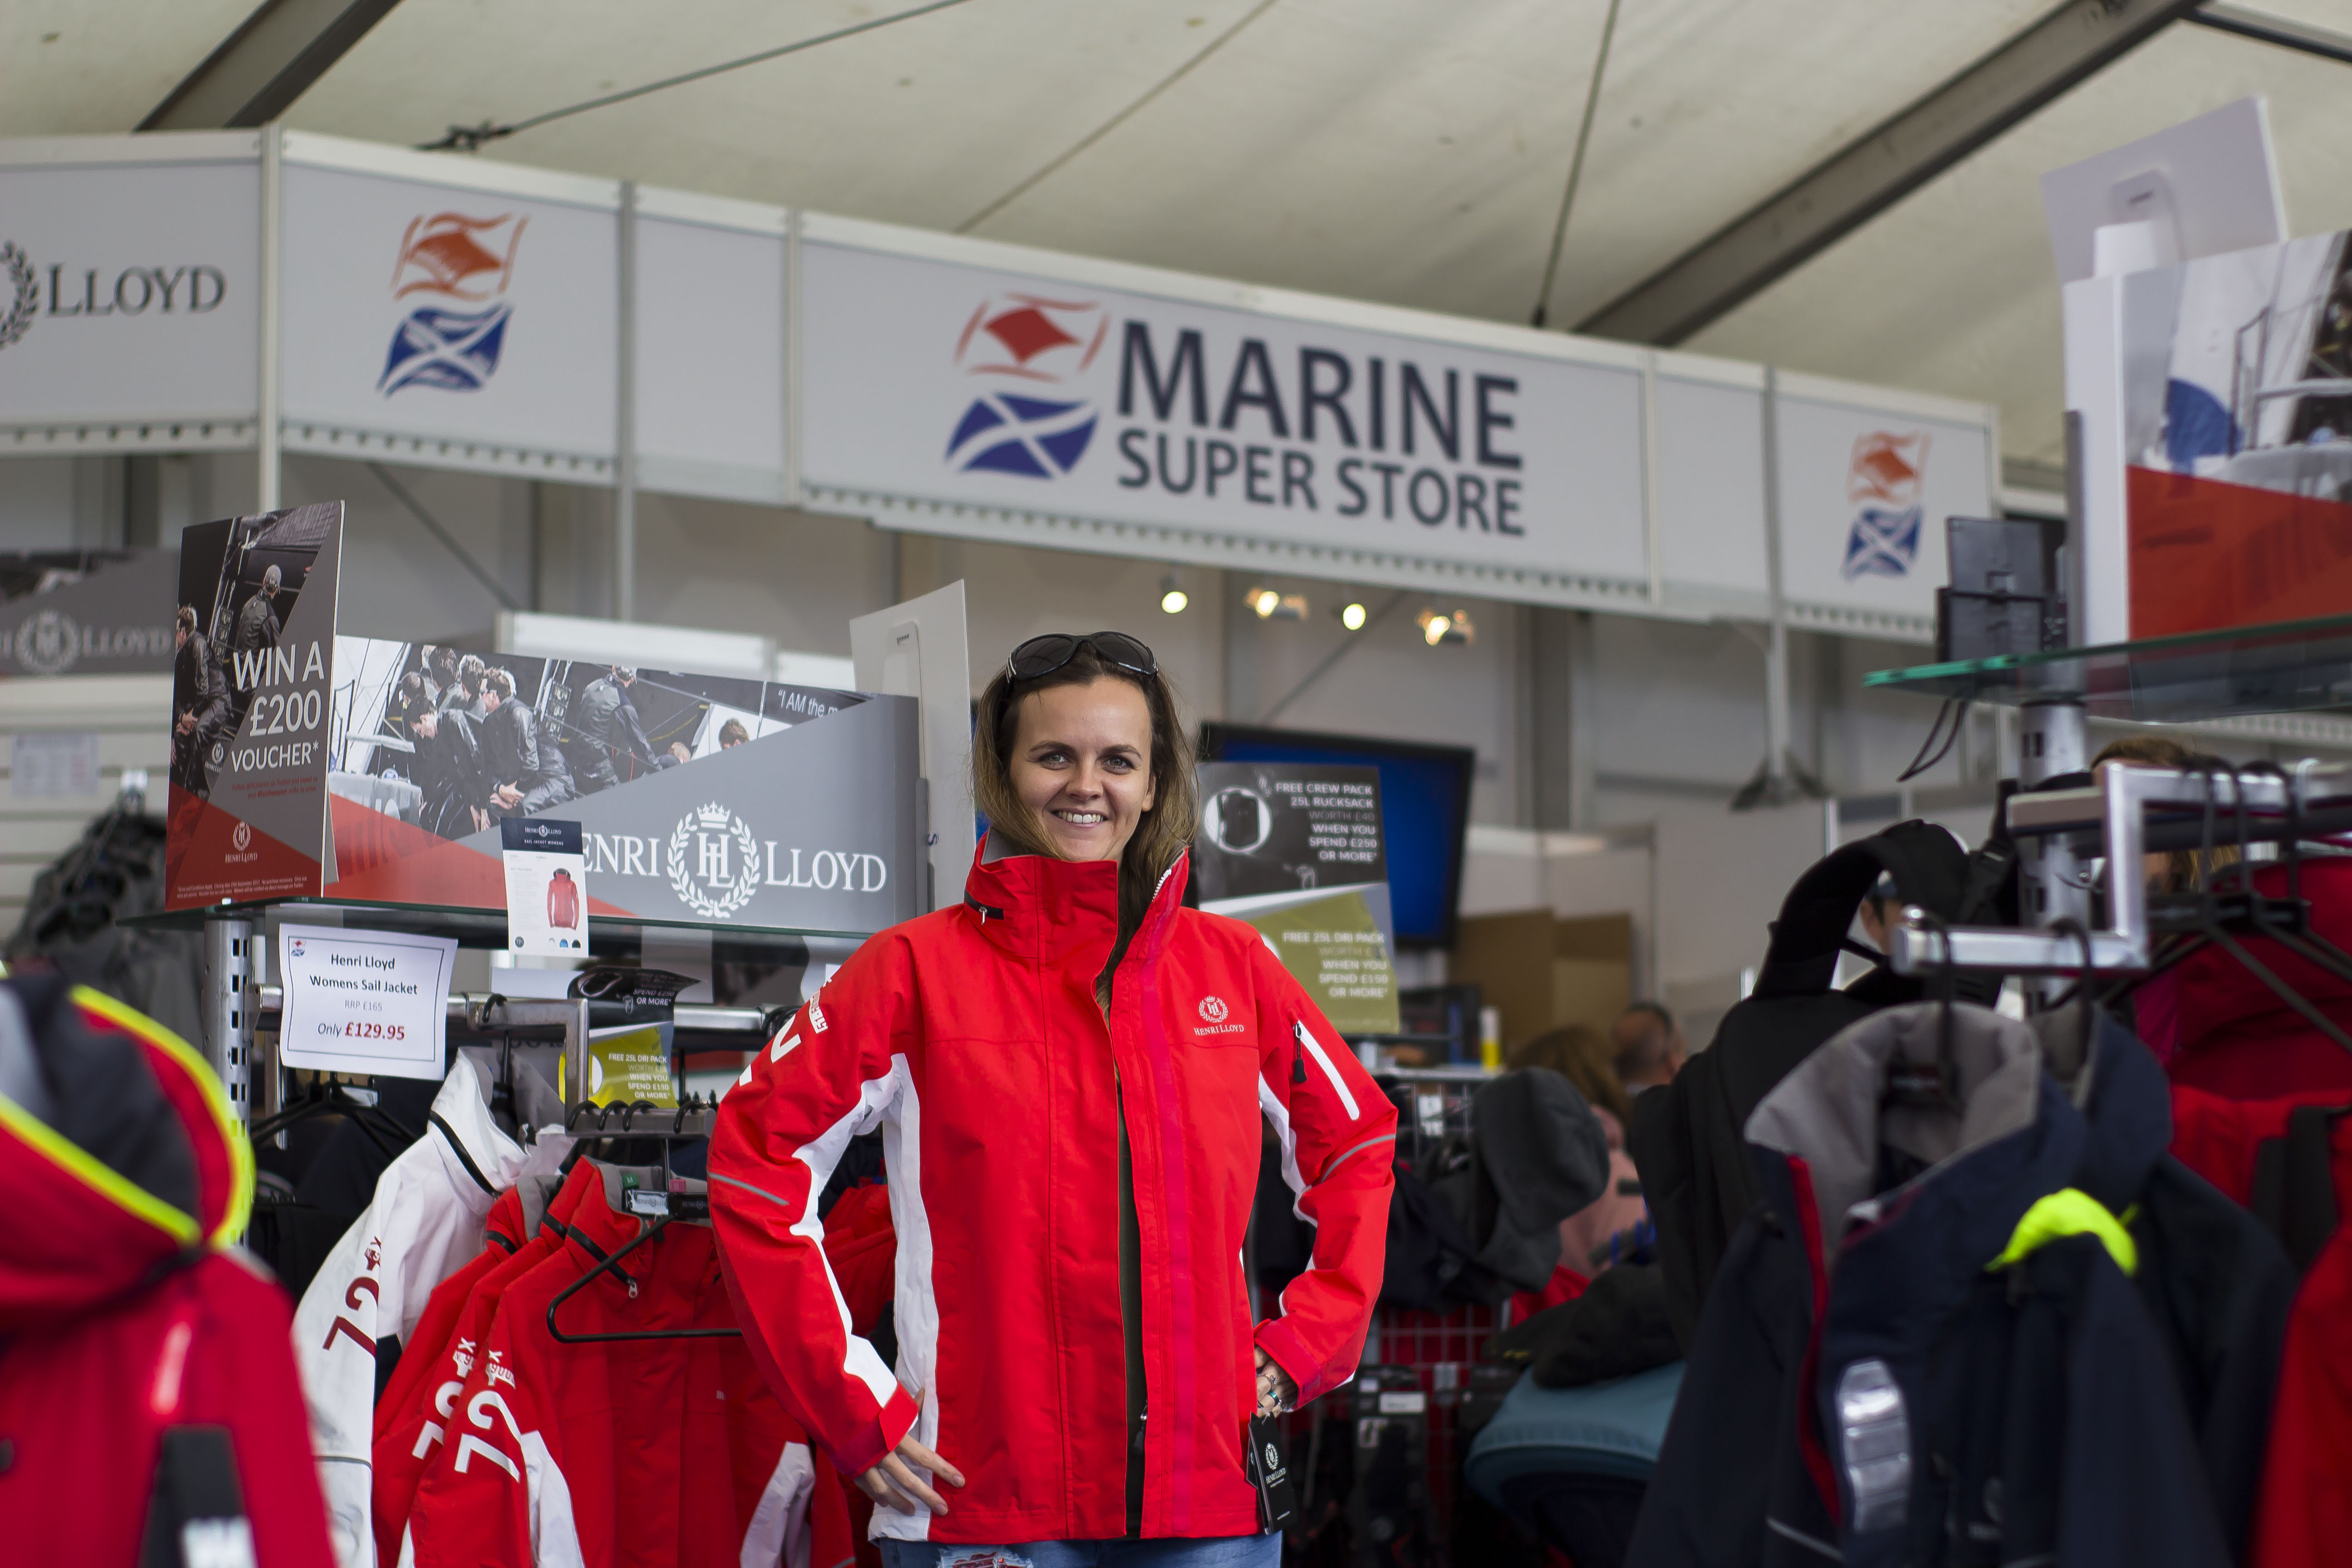 Marine Super Store Southampton Boat Show 2017